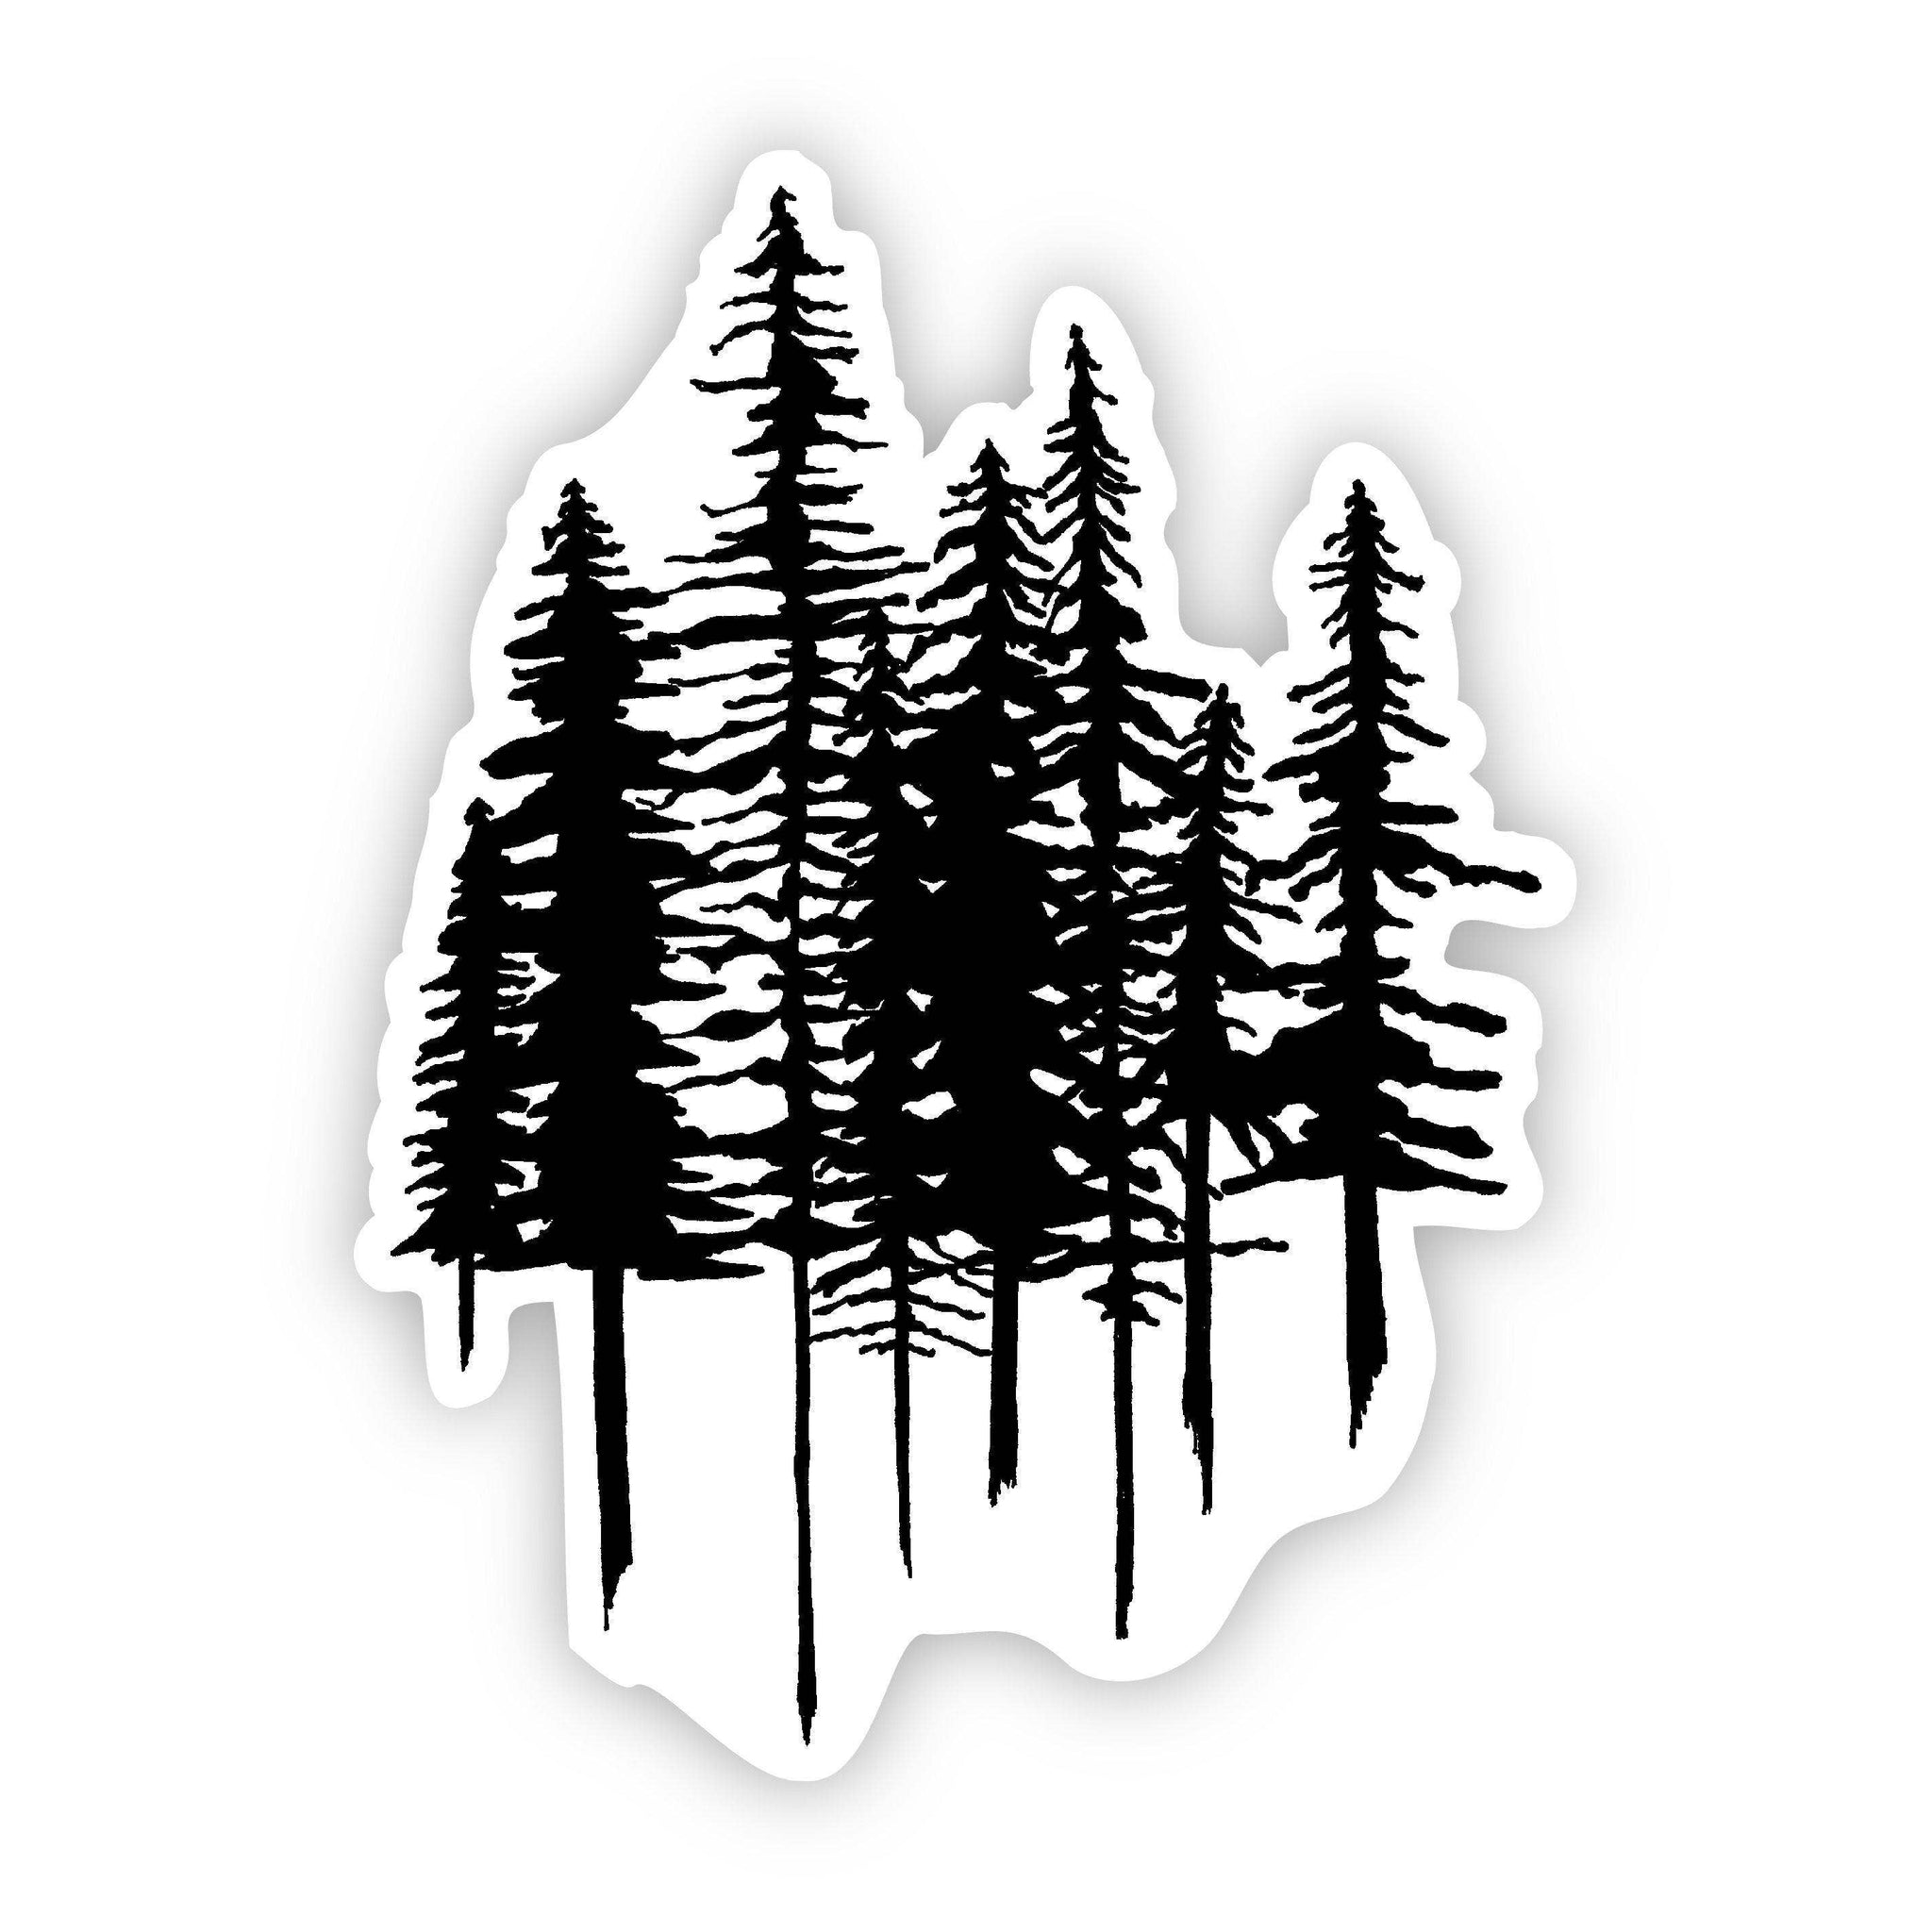 Big Moods - Trees Nature Sticker (Black and White)